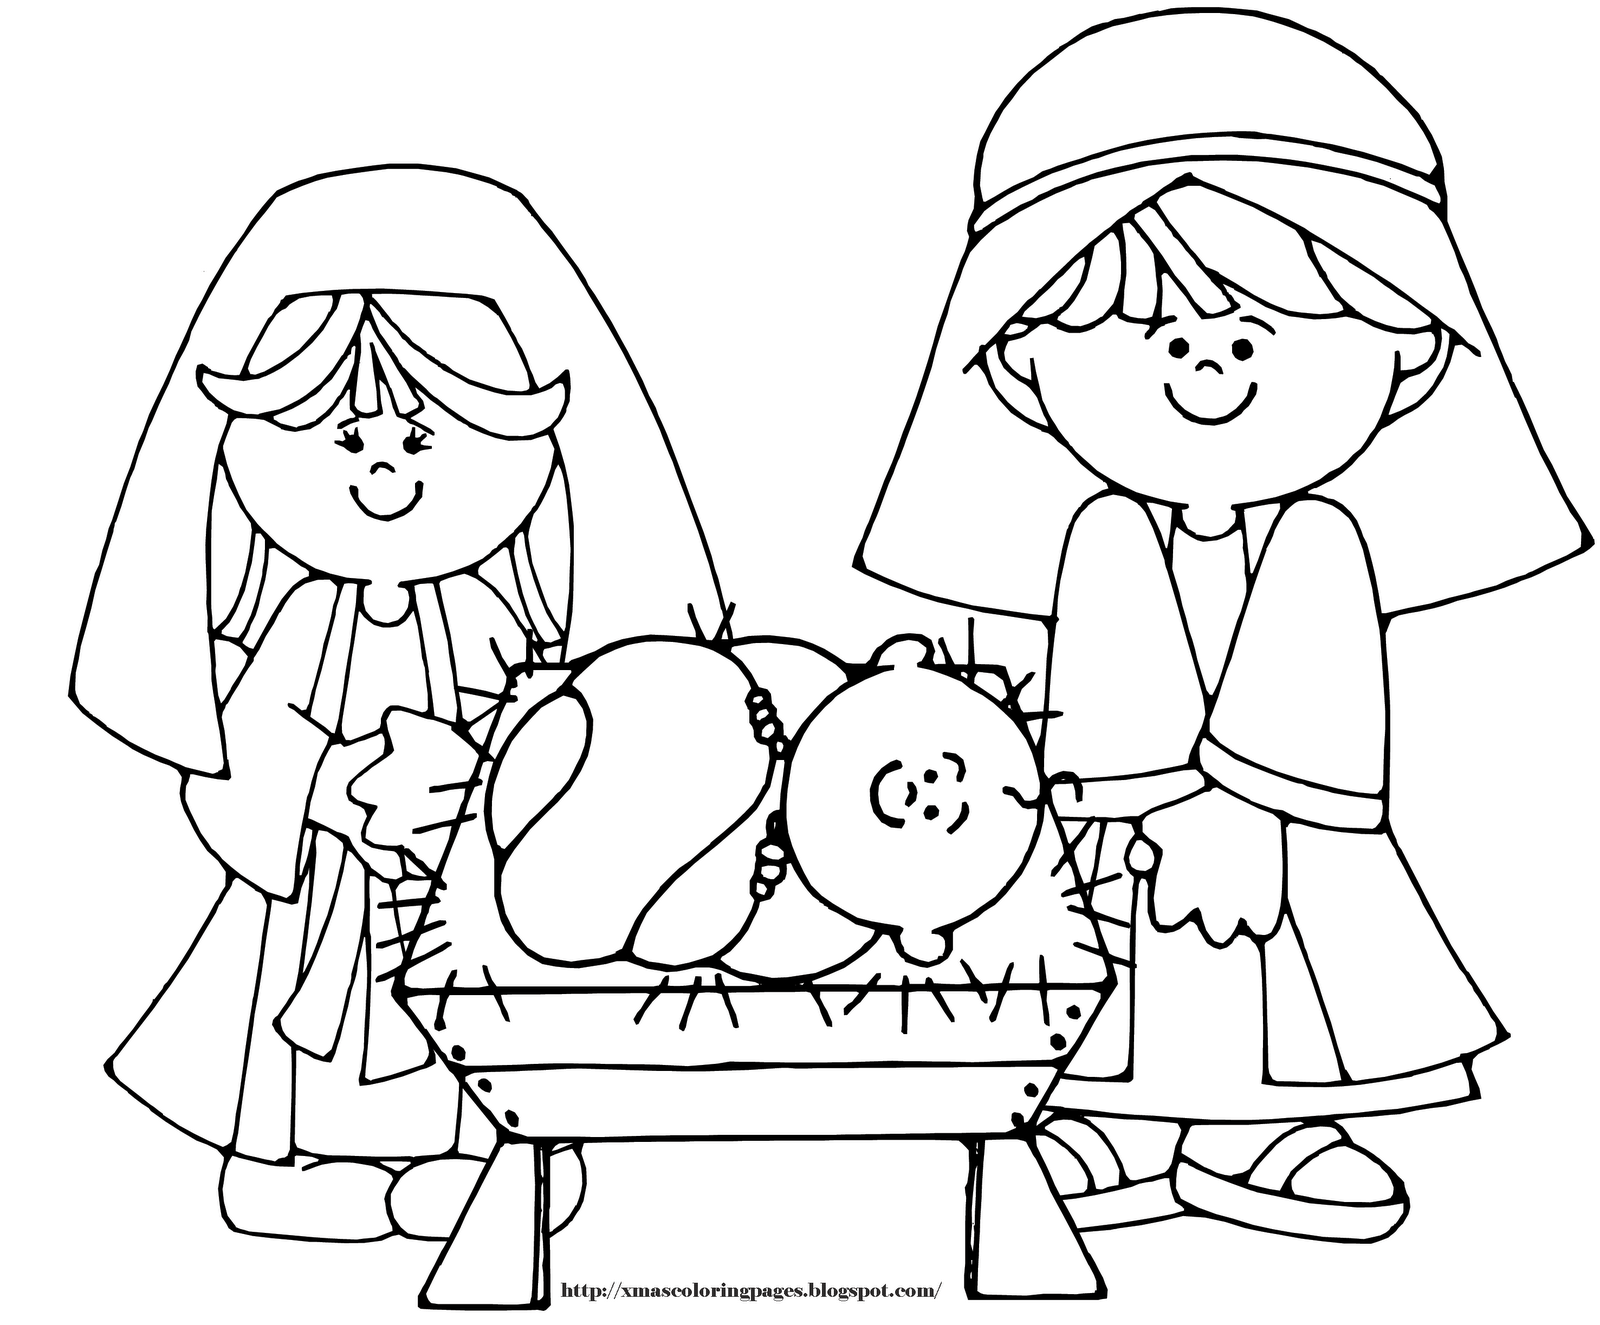 baby jesus coloring pages printable baby jesus coloring page printable at getcoloringscom printable coloring jesus pages baby